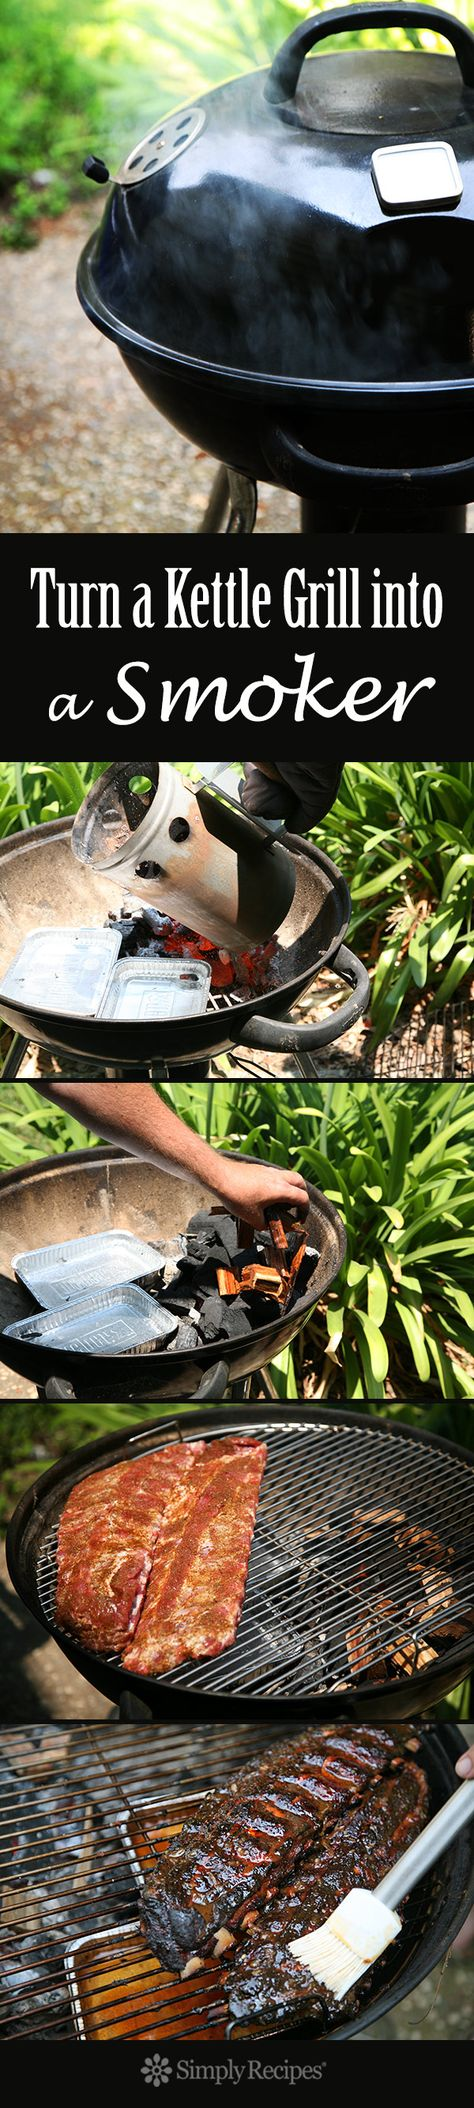 How to Turn Your Kettle Grill into a Smoker ~ Don't have a smoker? Smoke ribs on your Weber grill, low and slow.  Step-by-step instructions on how to smoke meat on your kettle grill. ~ SimplyRecipes.com